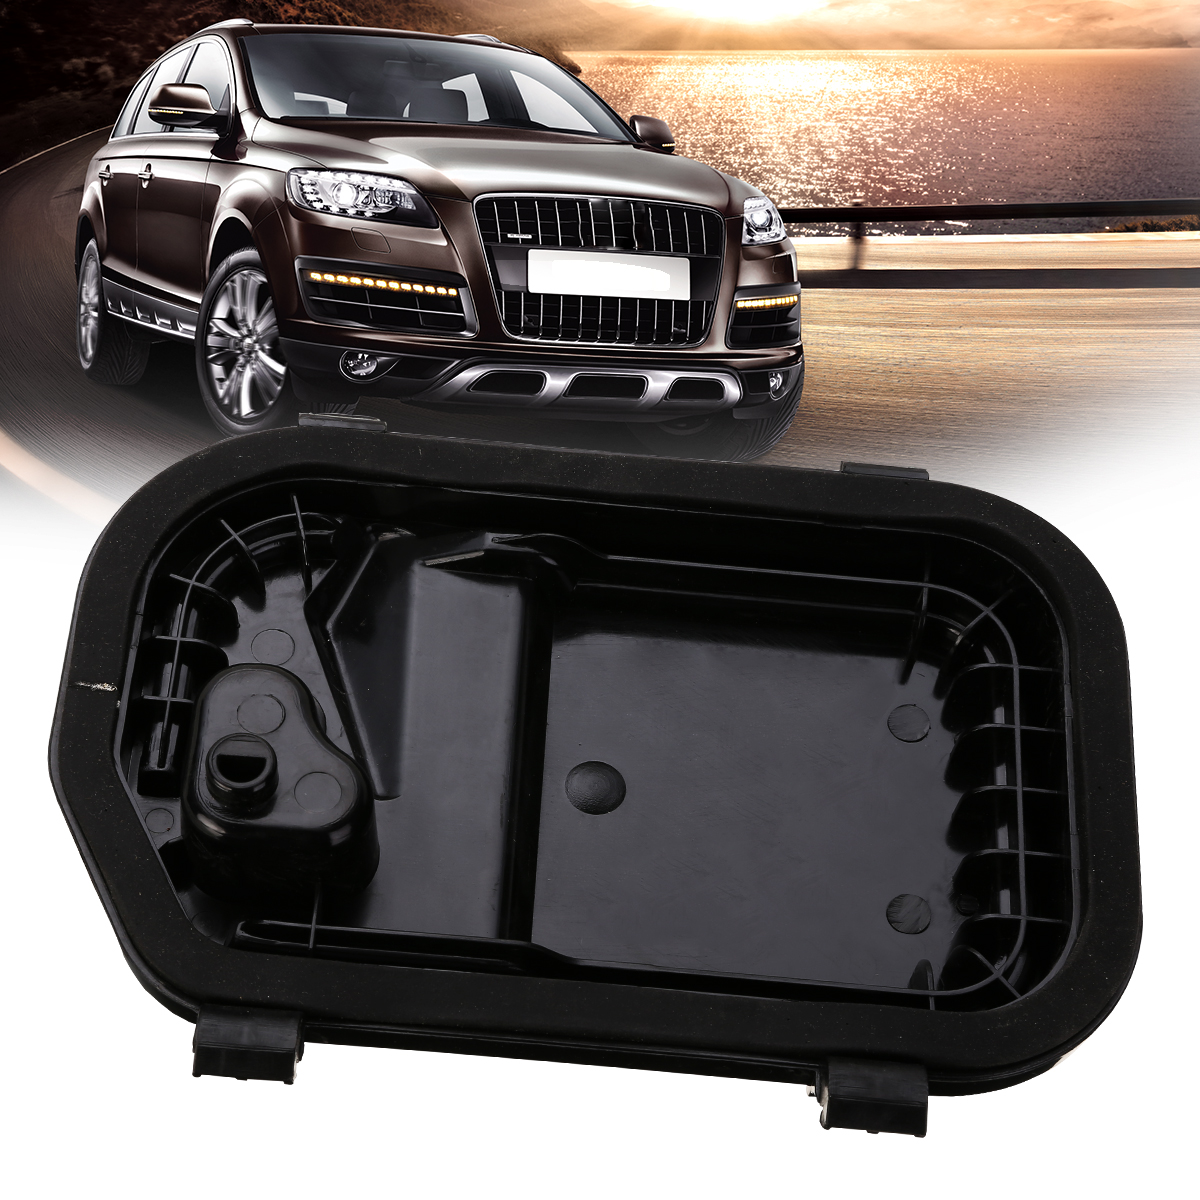 New Arrival 1pc Right Headlight Cover Protective Cap 4F0941158 For Audi A6 S6 RS6 C6 2005-2011 radiator cooling fan relay control module for audi a6 c6 s6 4f0959501g 4f0959501c